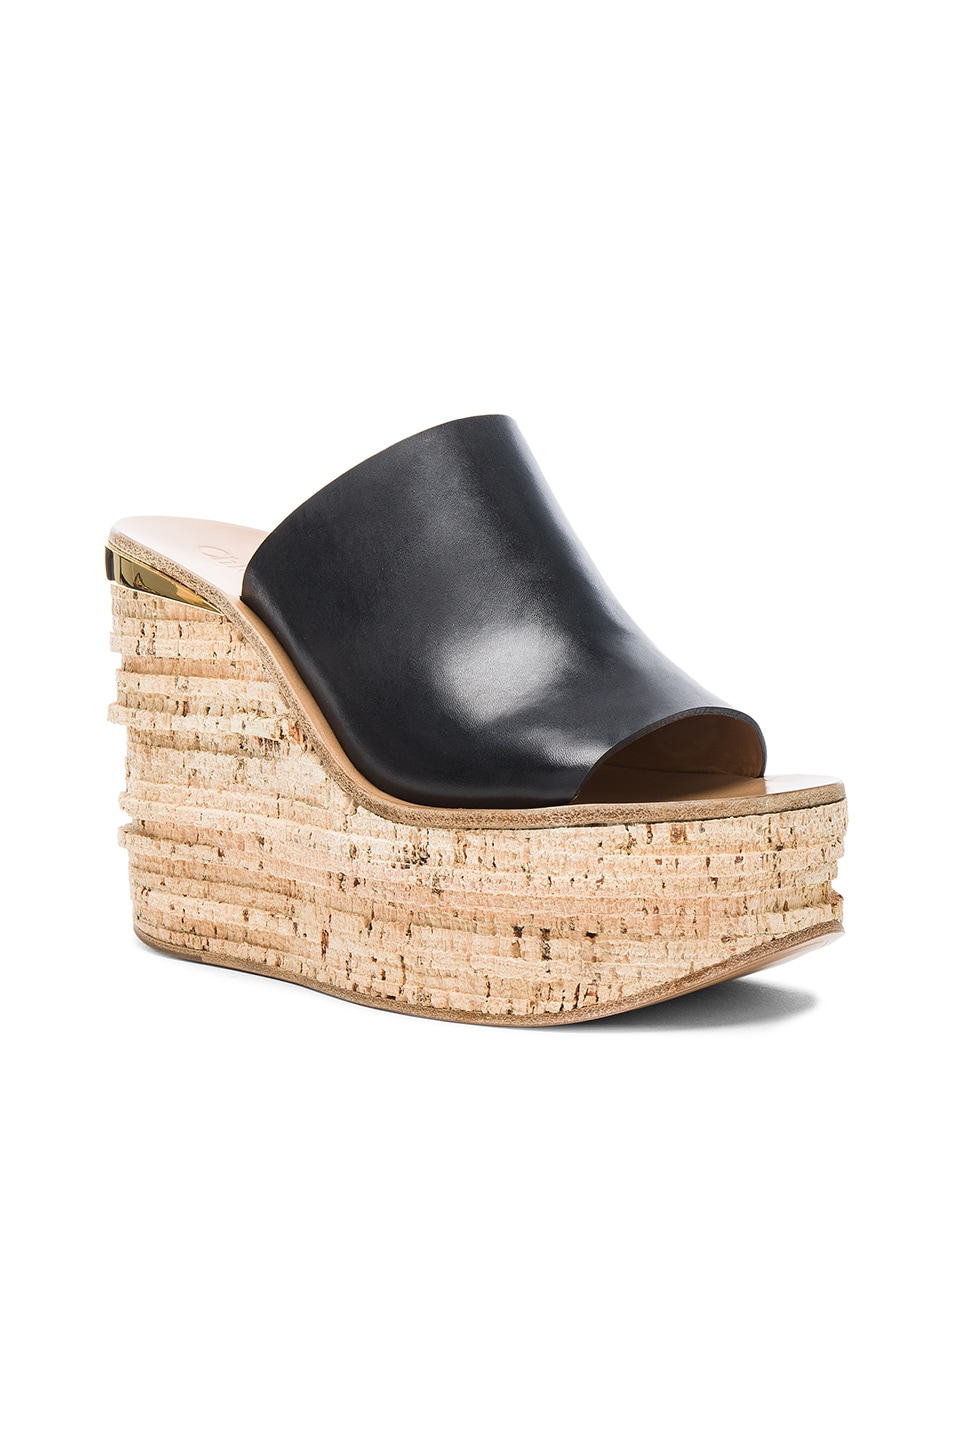 3b78c5696d7a Image 2 of Chloe Camille Leather Wedge Sandals in Black